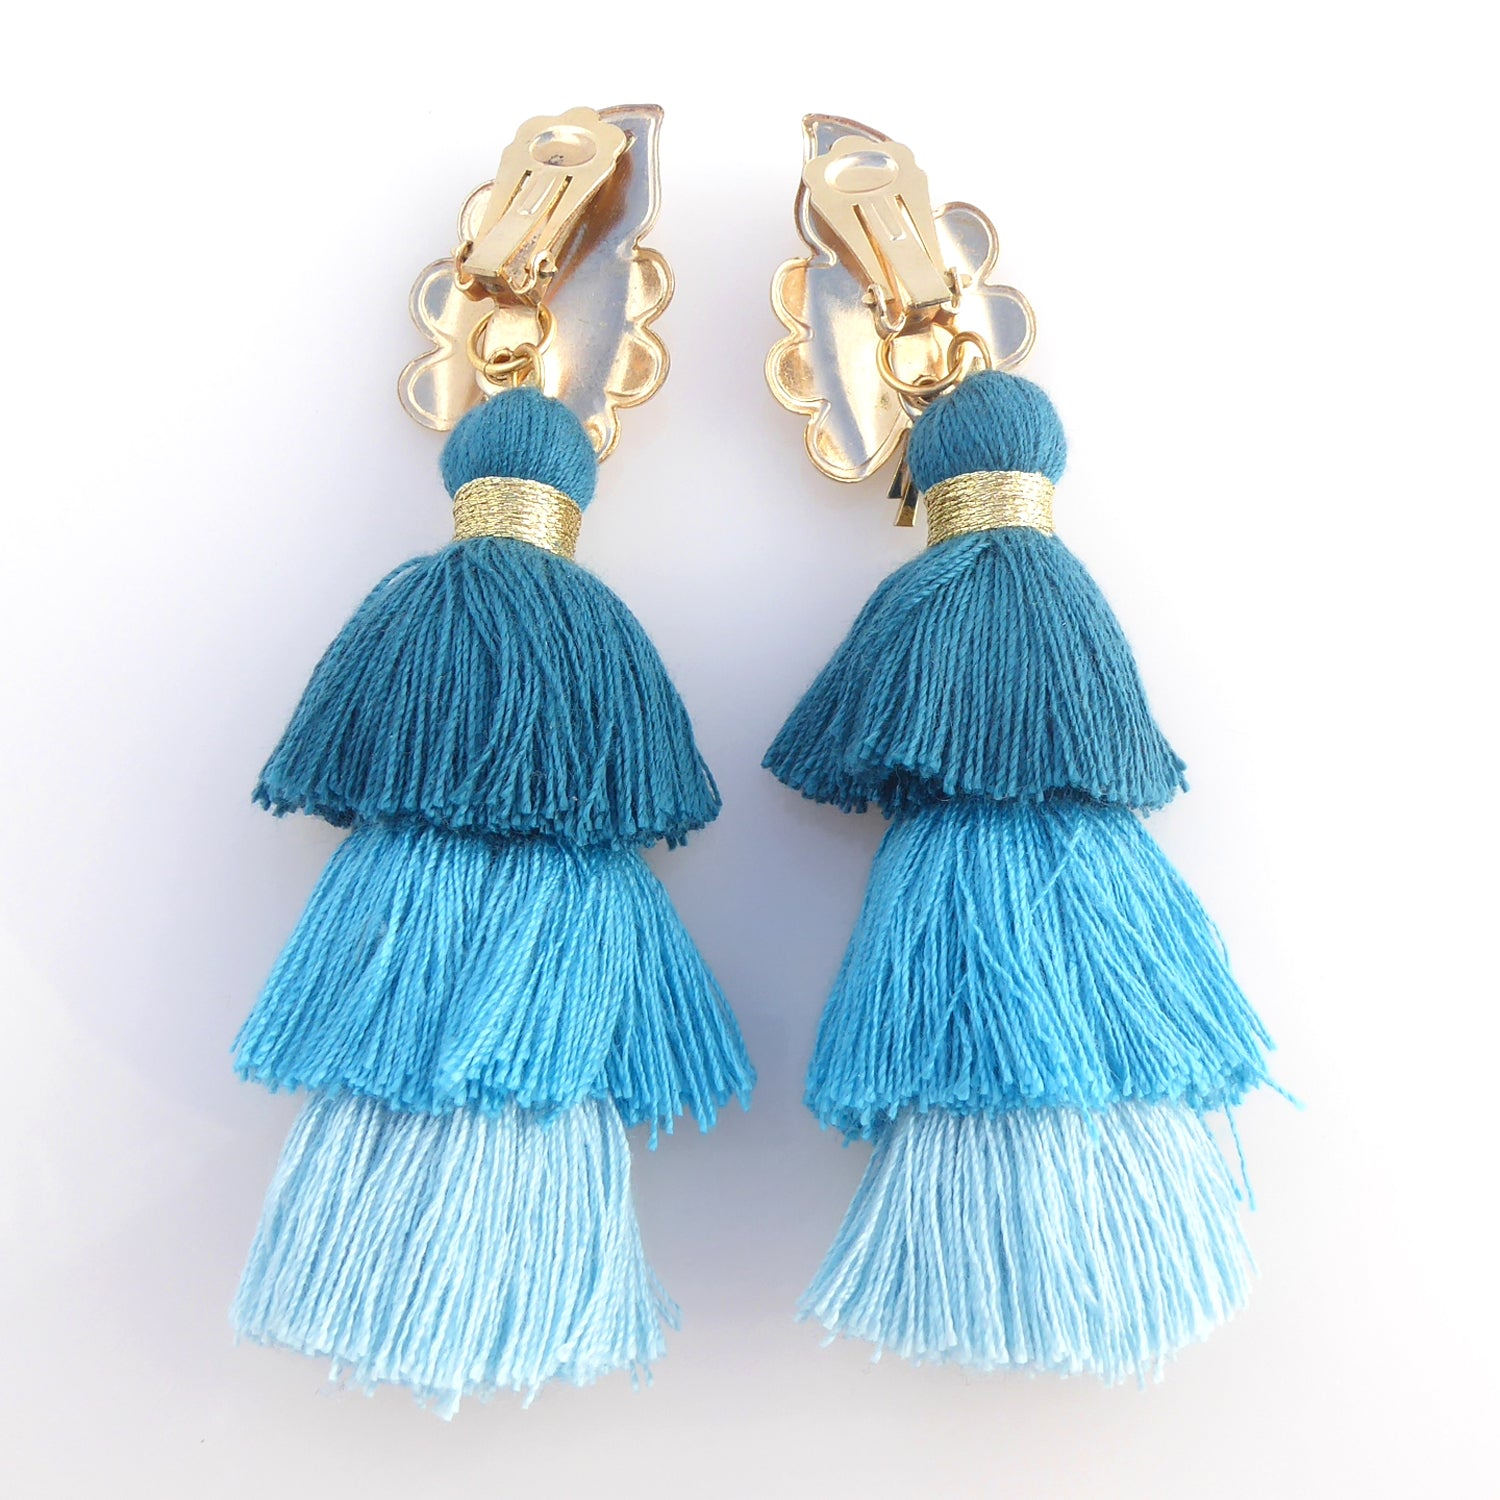 Iridescent leaf tassel earrings